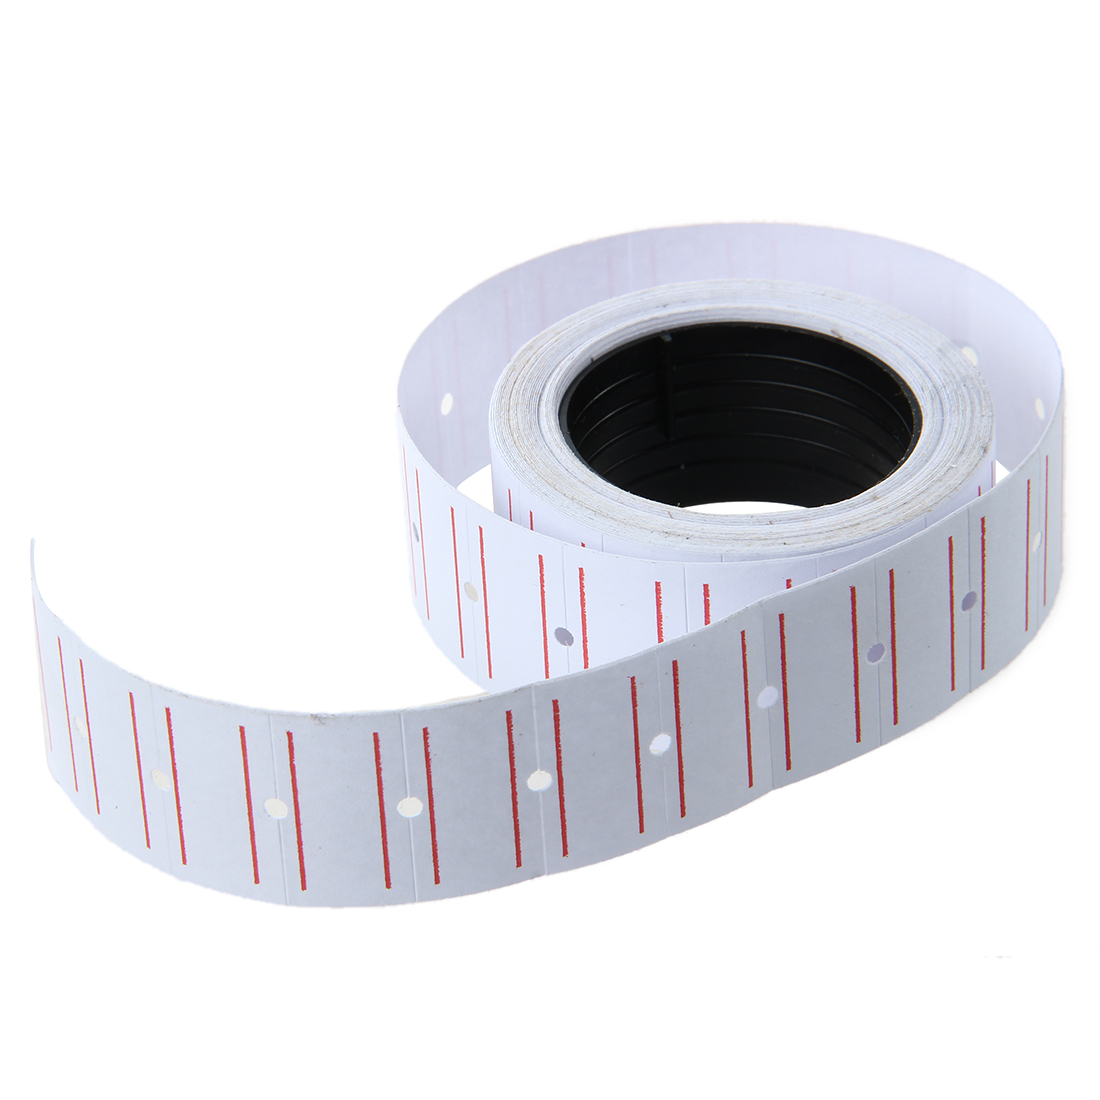 New 10 Rolls Label Paper for MX-5500 Price Gun LabellerNew 10 Rolls Label Paper for MX-5500 Price Gun Labeller